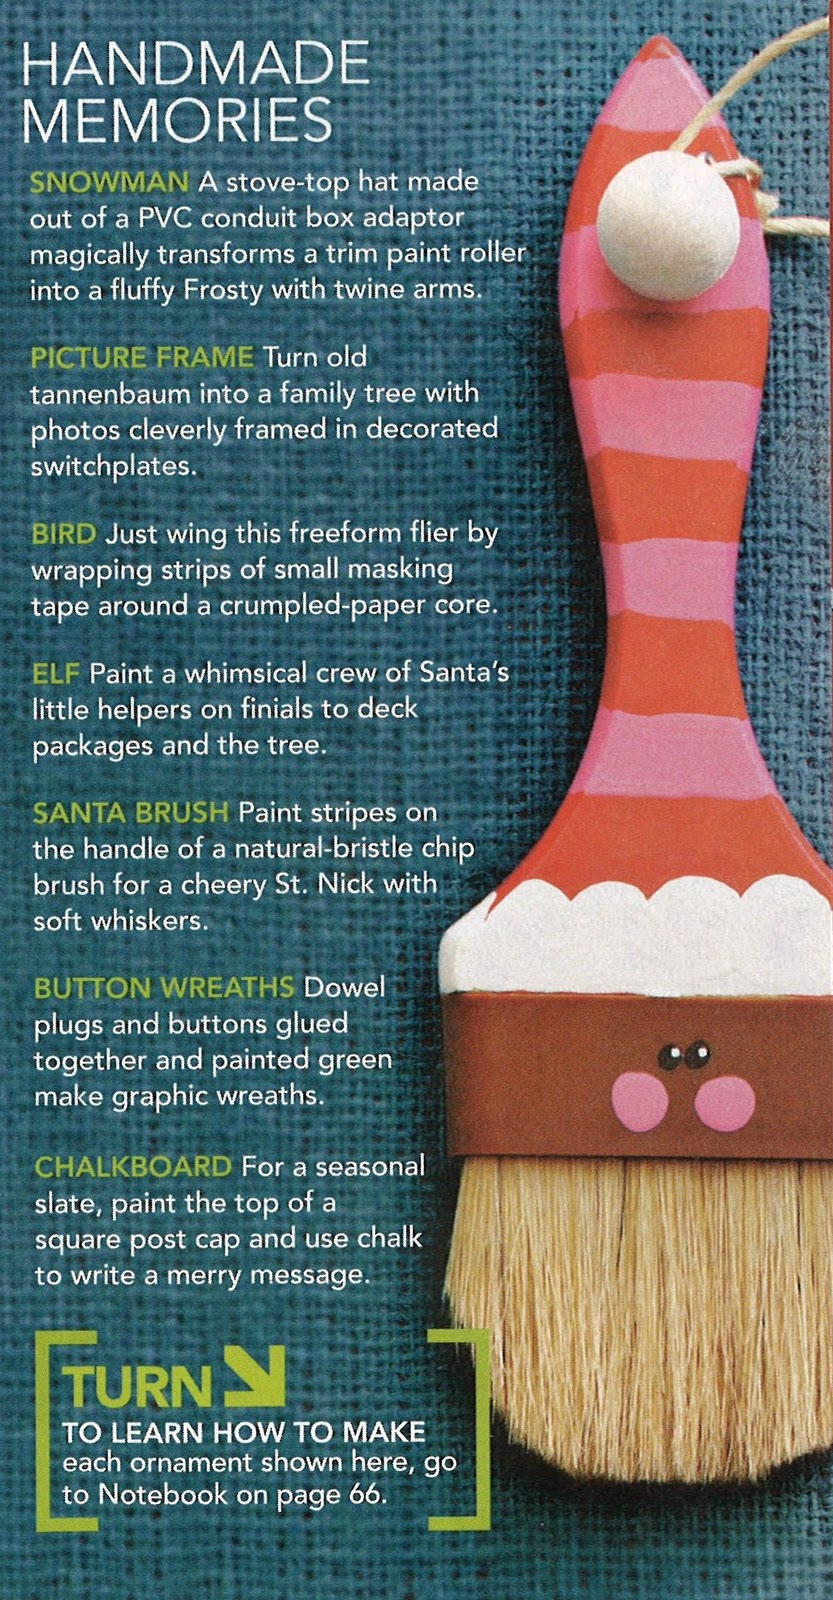 Bristle brush ornaments - Here You Can See All The Information You Need To Make All Of These Ornaments Lowe S Says That These Ornaments Are Under 10 Each If You Make More Then One